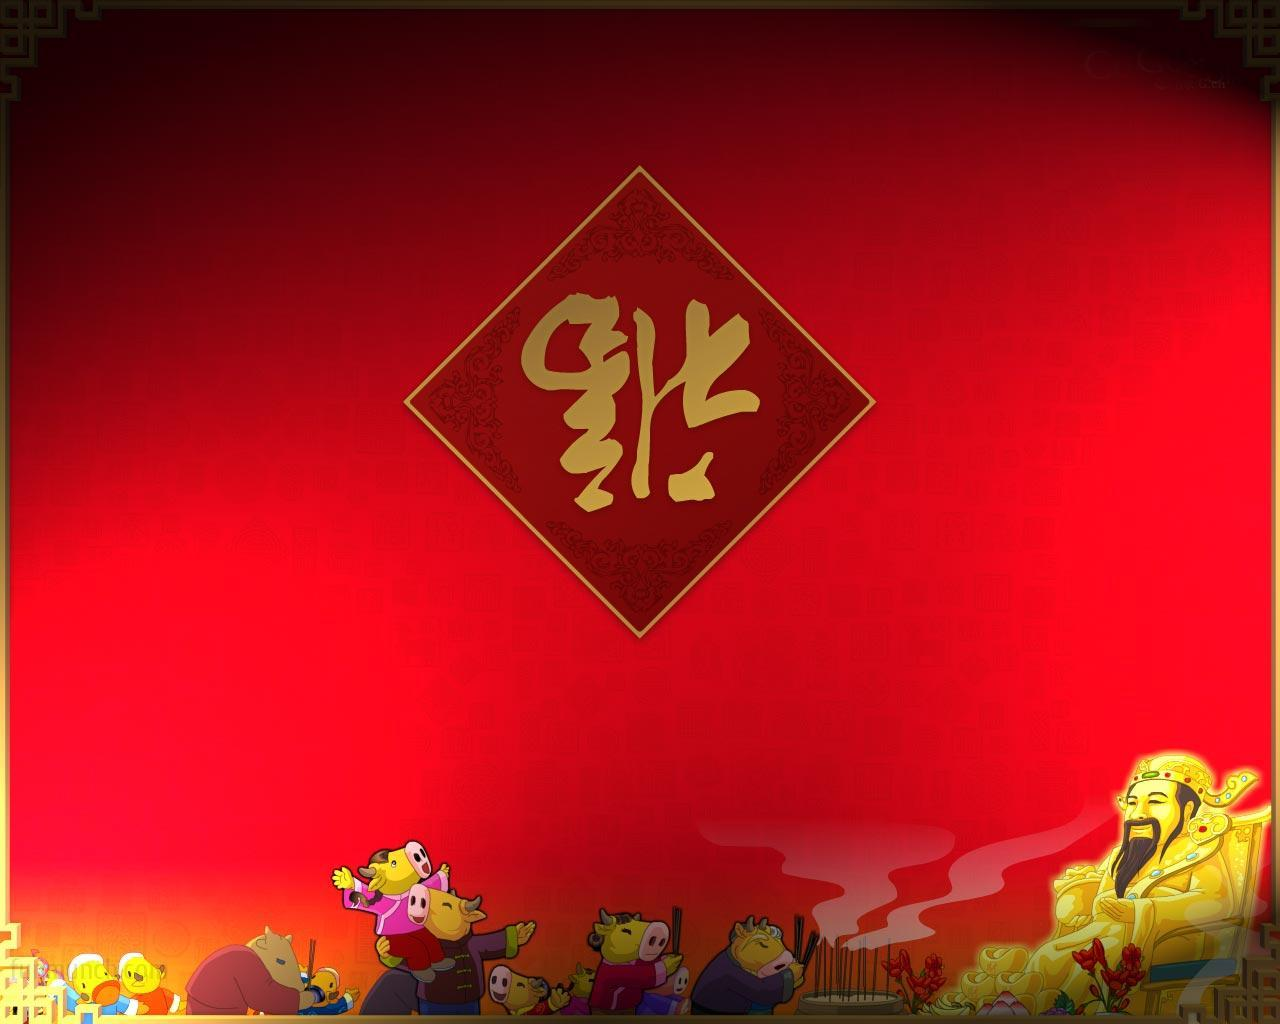 Chinese New Years Wallpaper Desktop 12814 Wallpaper Cool 1280x1024